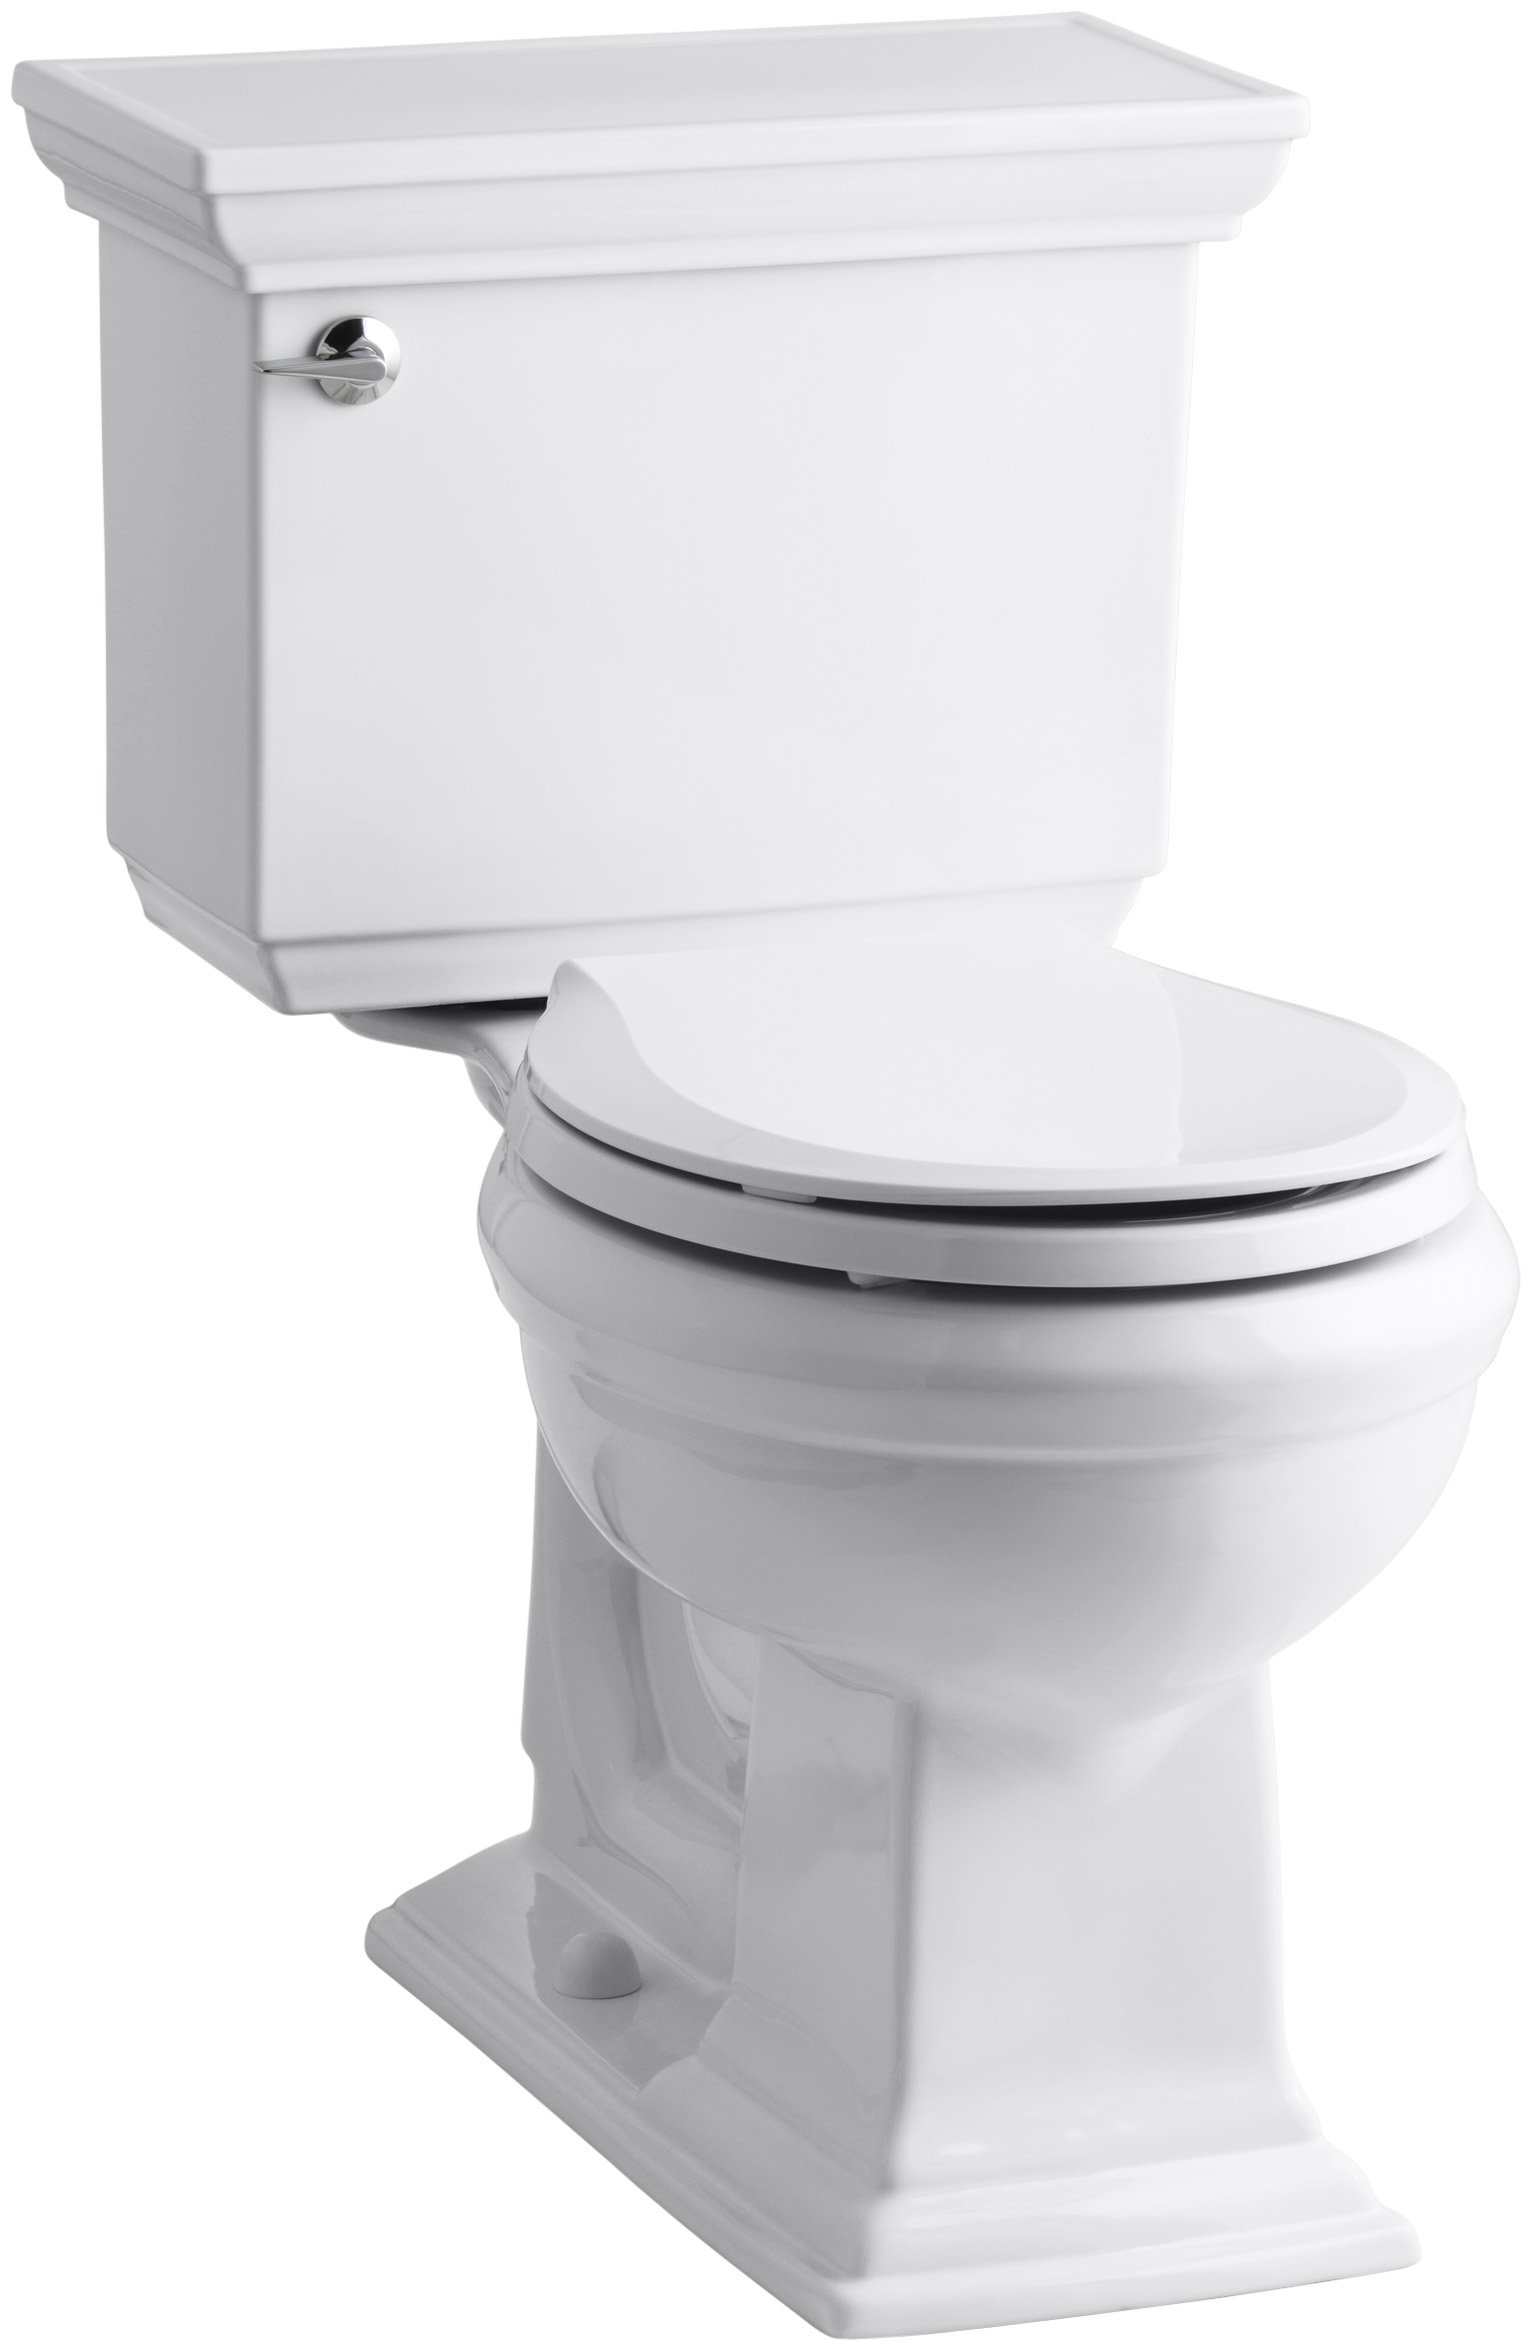 Kohler K-3933-0 Memoirs Comfort Height Two-Piece Round Front Toilet with Stately Design, White - 567212 by Kohler